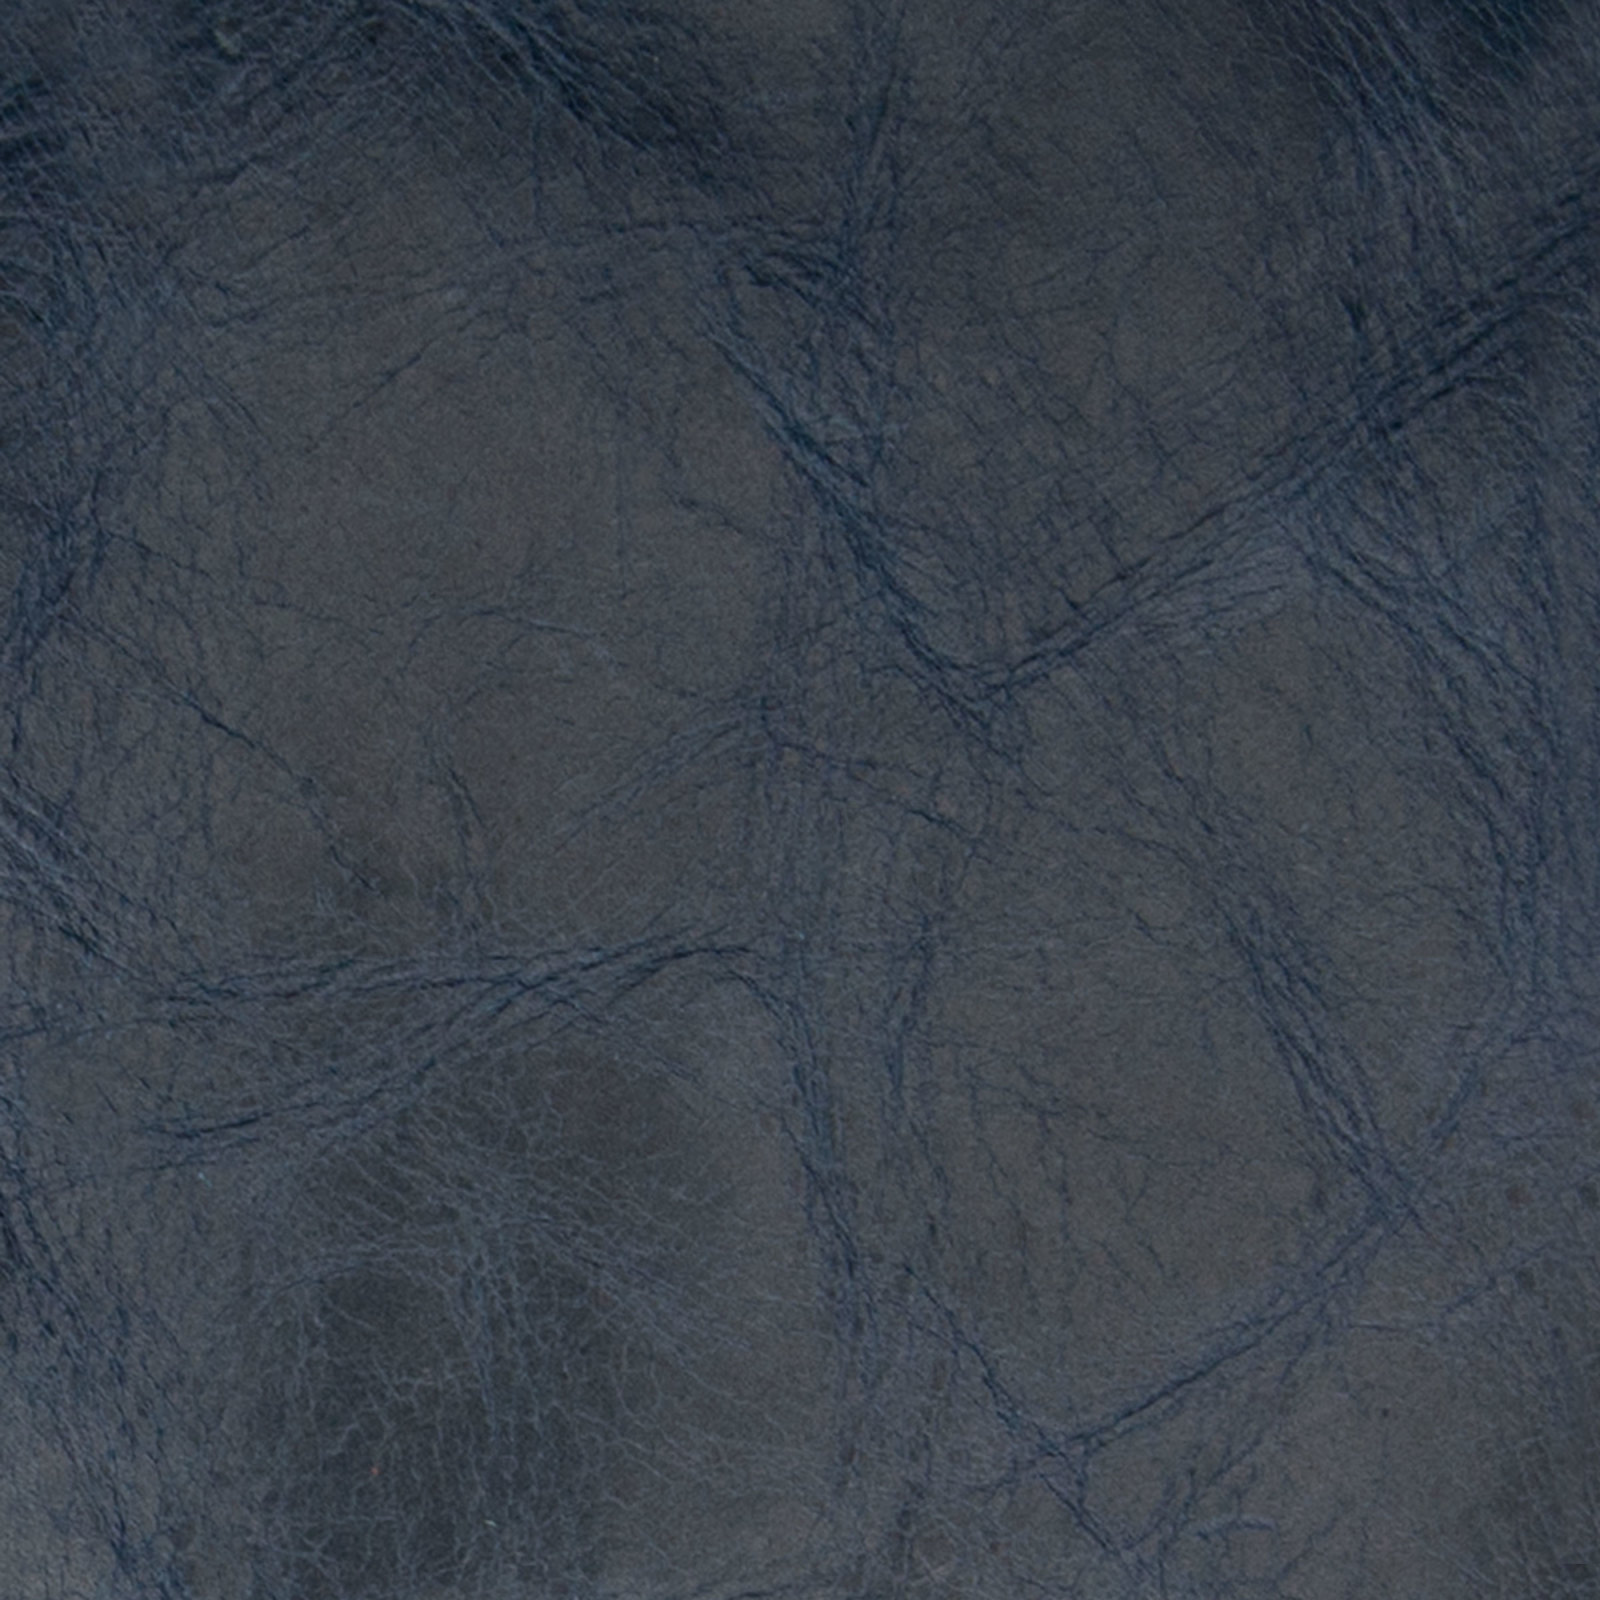 B5173 Deep Blue Greenhouse Fabrics